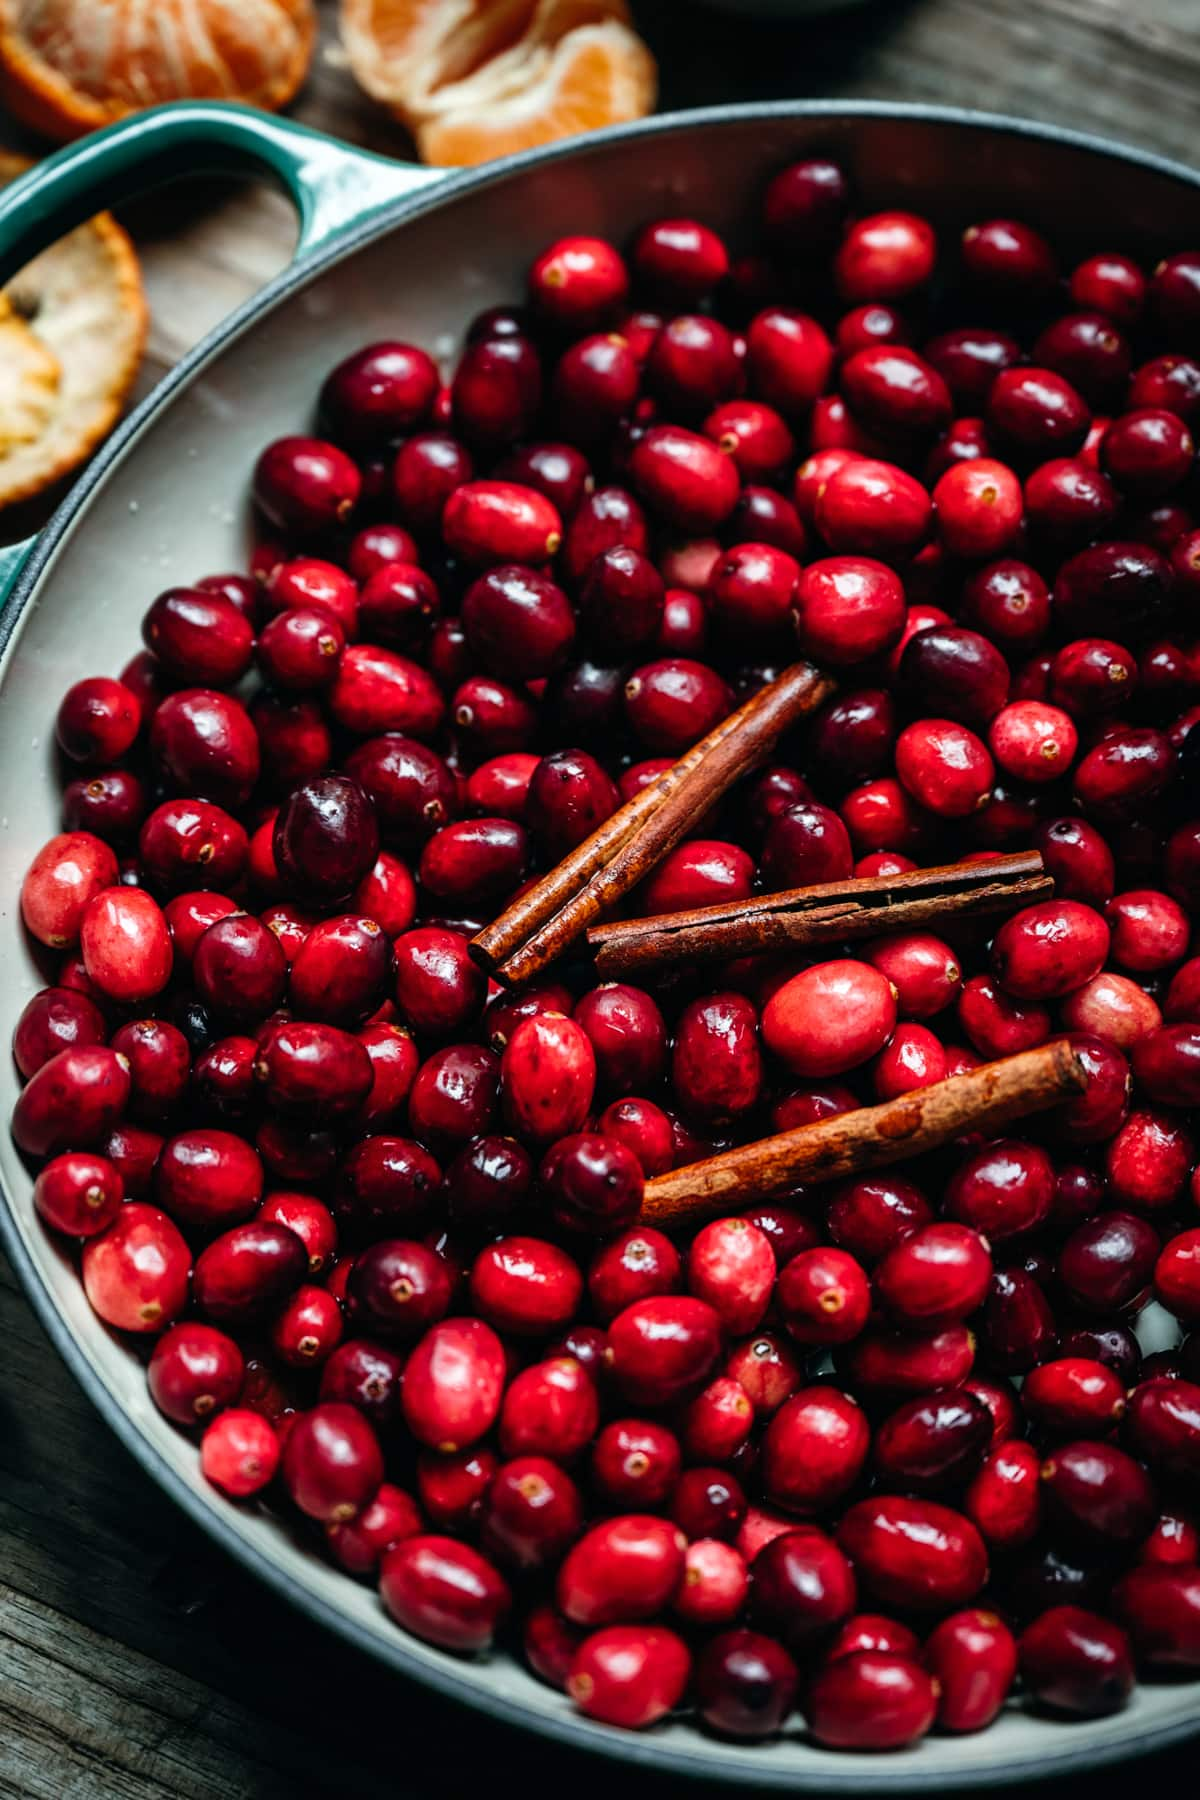 close up view of fresh cranberries in a pot with cinnamon sticks